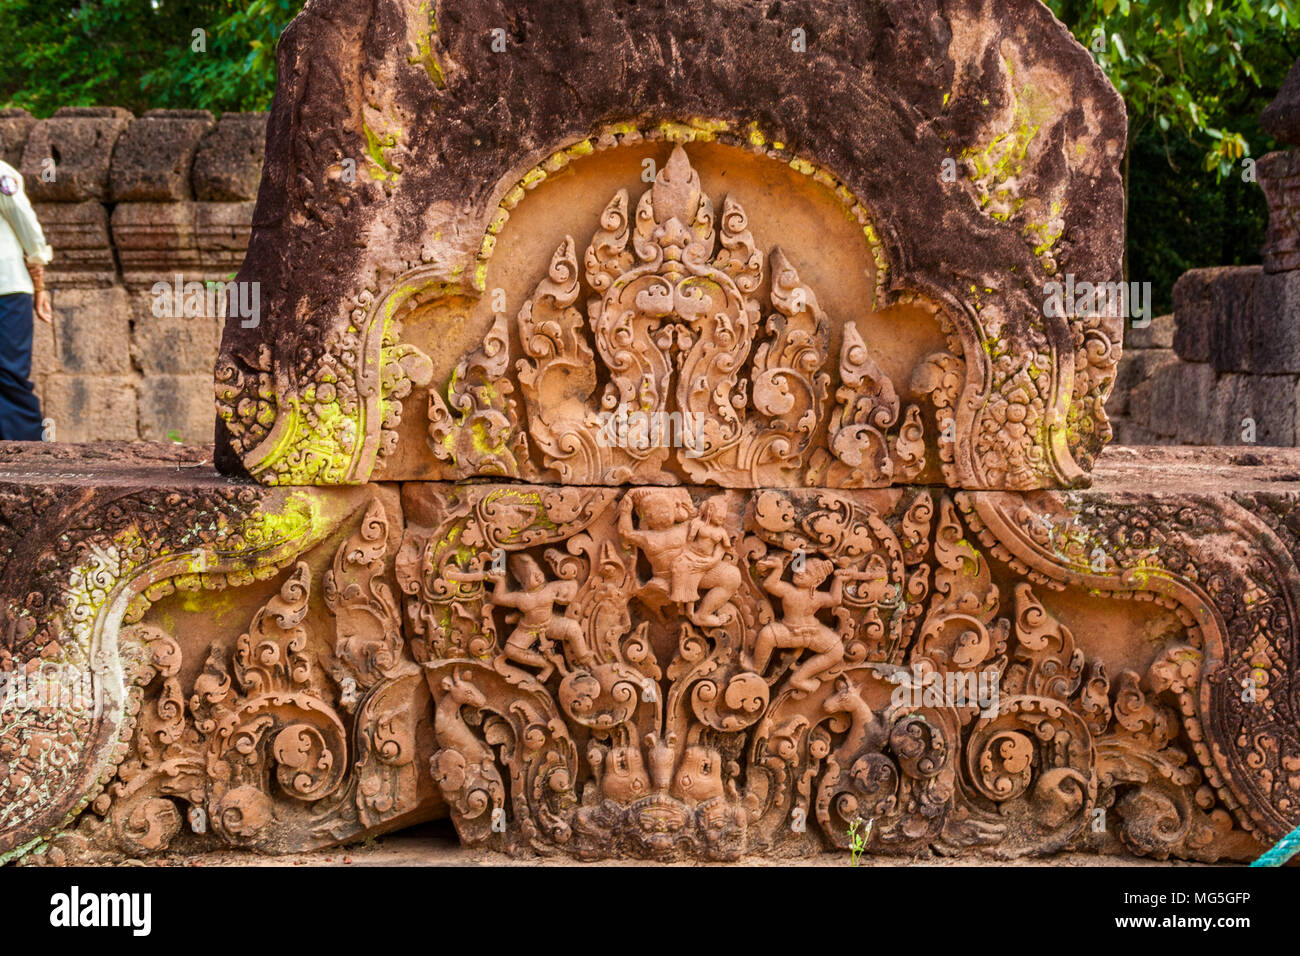 At the causeway of the outer enclosure of Cambodia's Banteay Srei (Citadel of the Women) temple stands this intricate bas-relief. - Stock Image